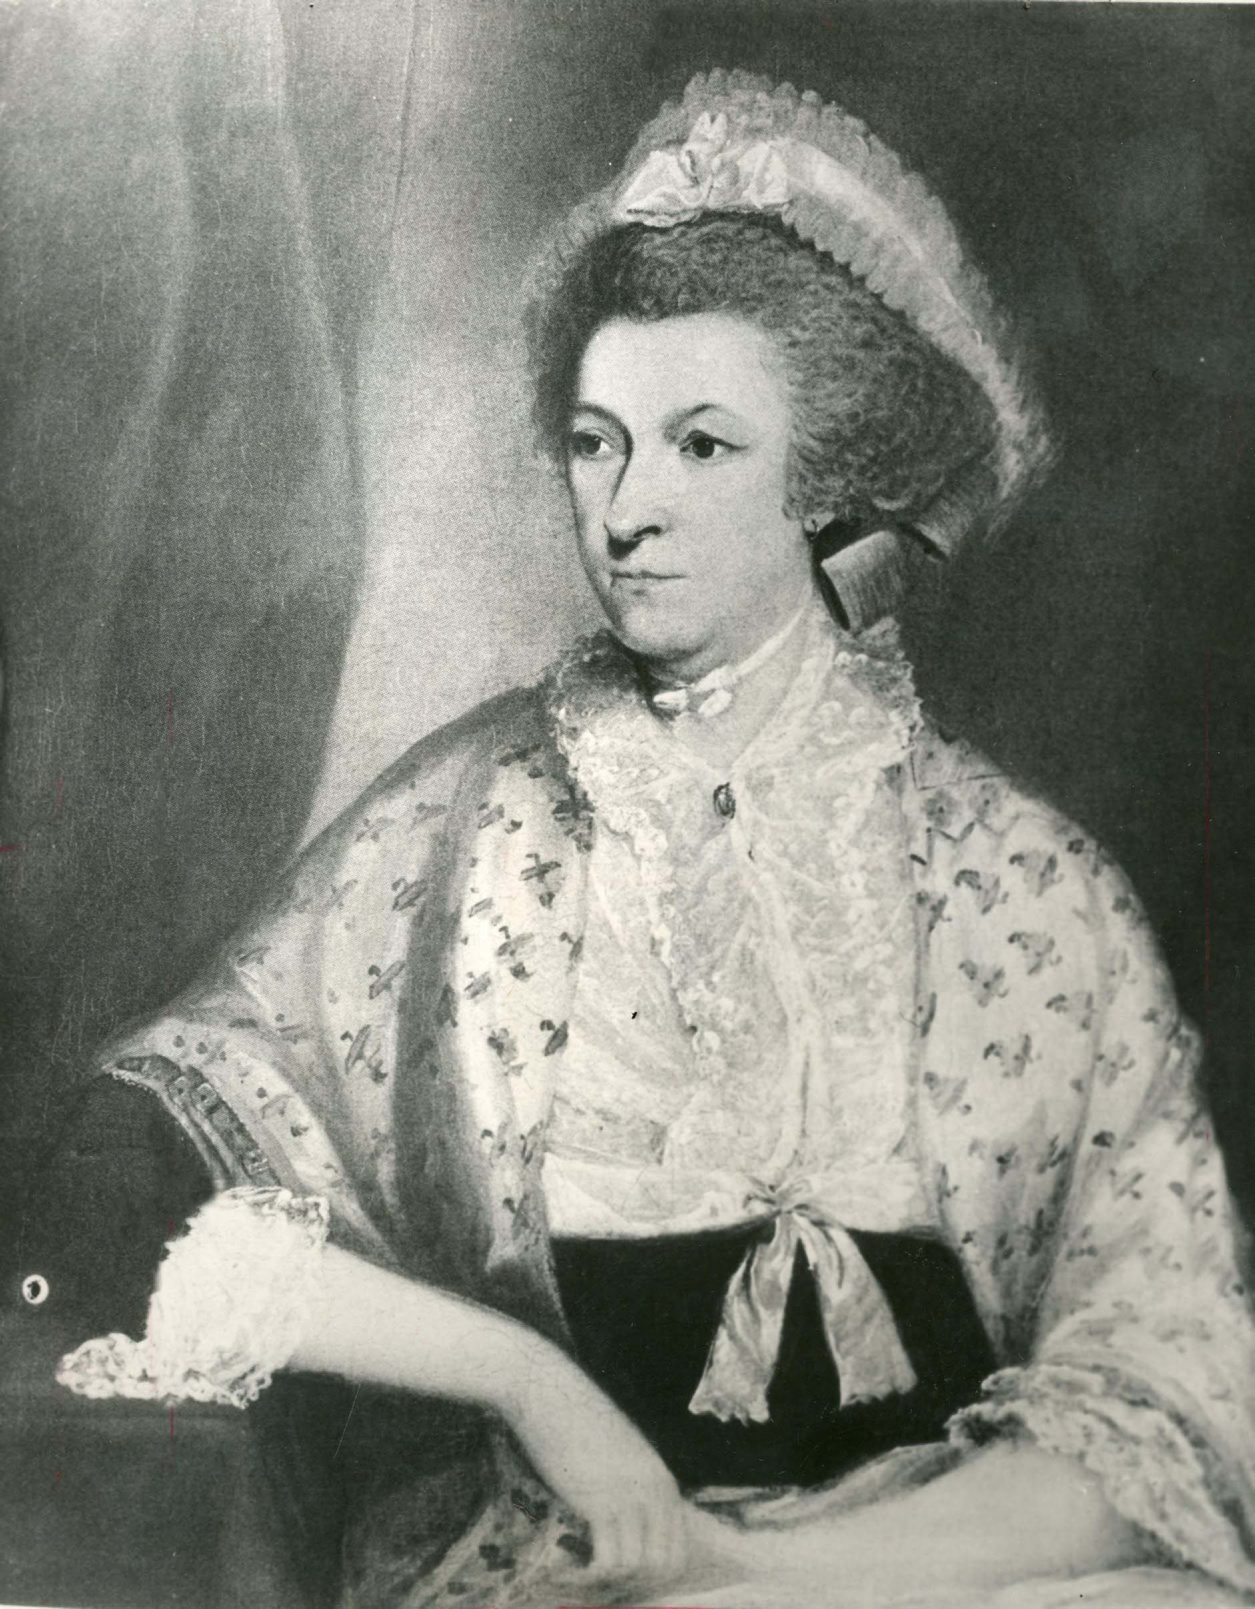 In her letters, Abagail Adams didn't hold back when giving her opinions on the famous people and events of her day.